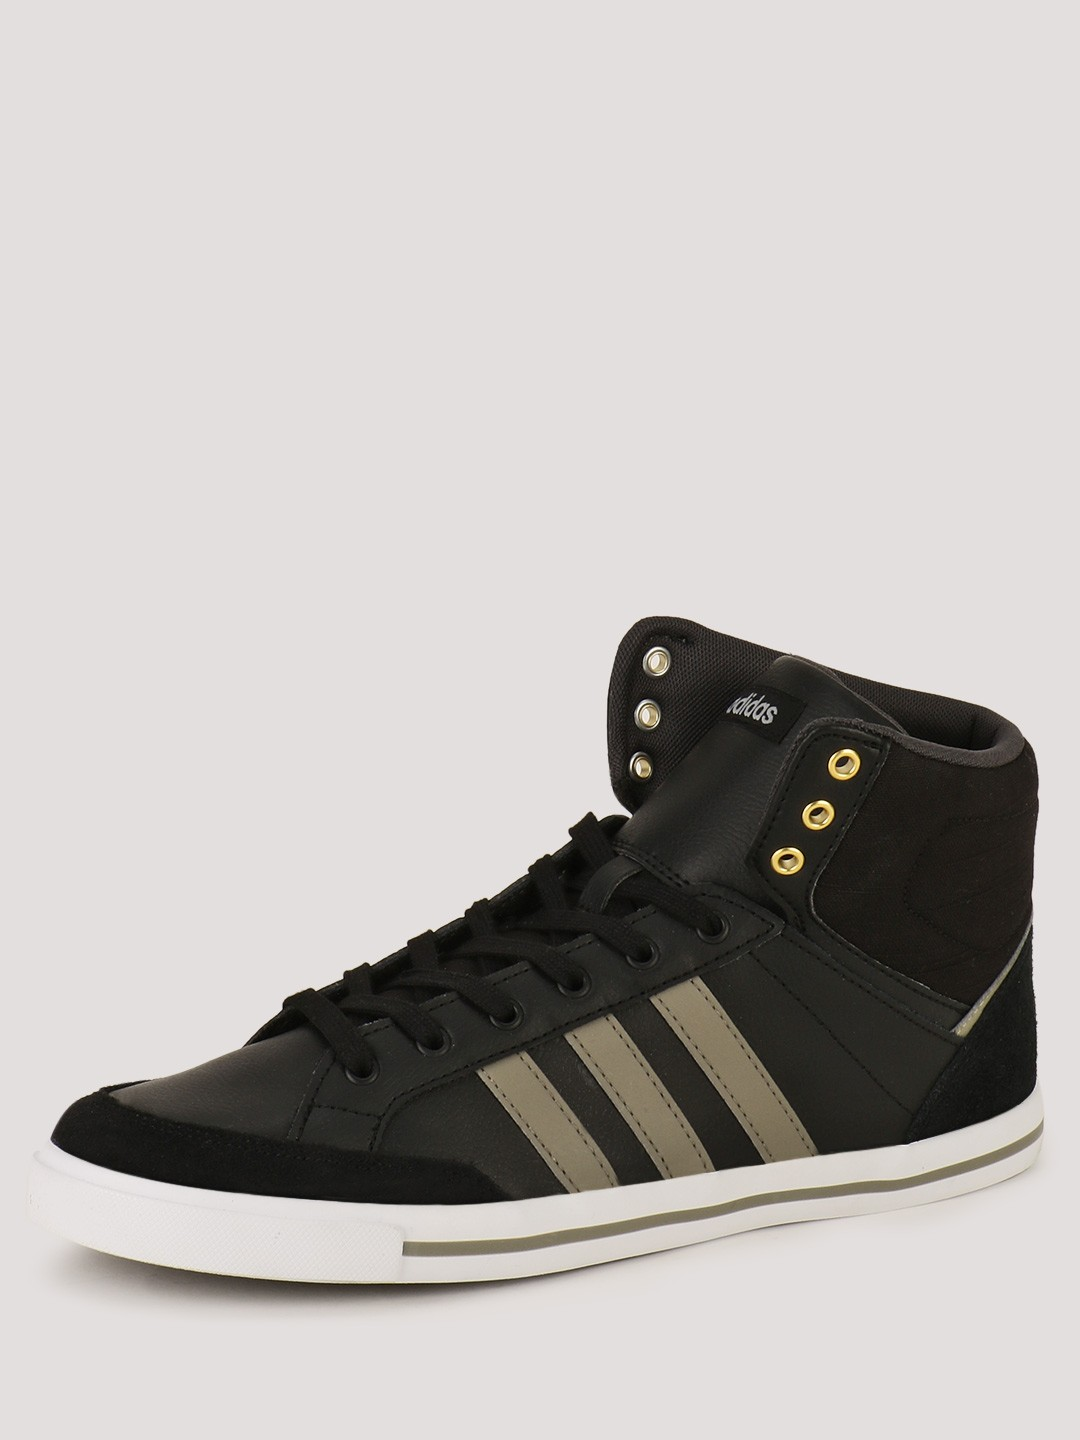 Adidas Neo Mid Top Shoes